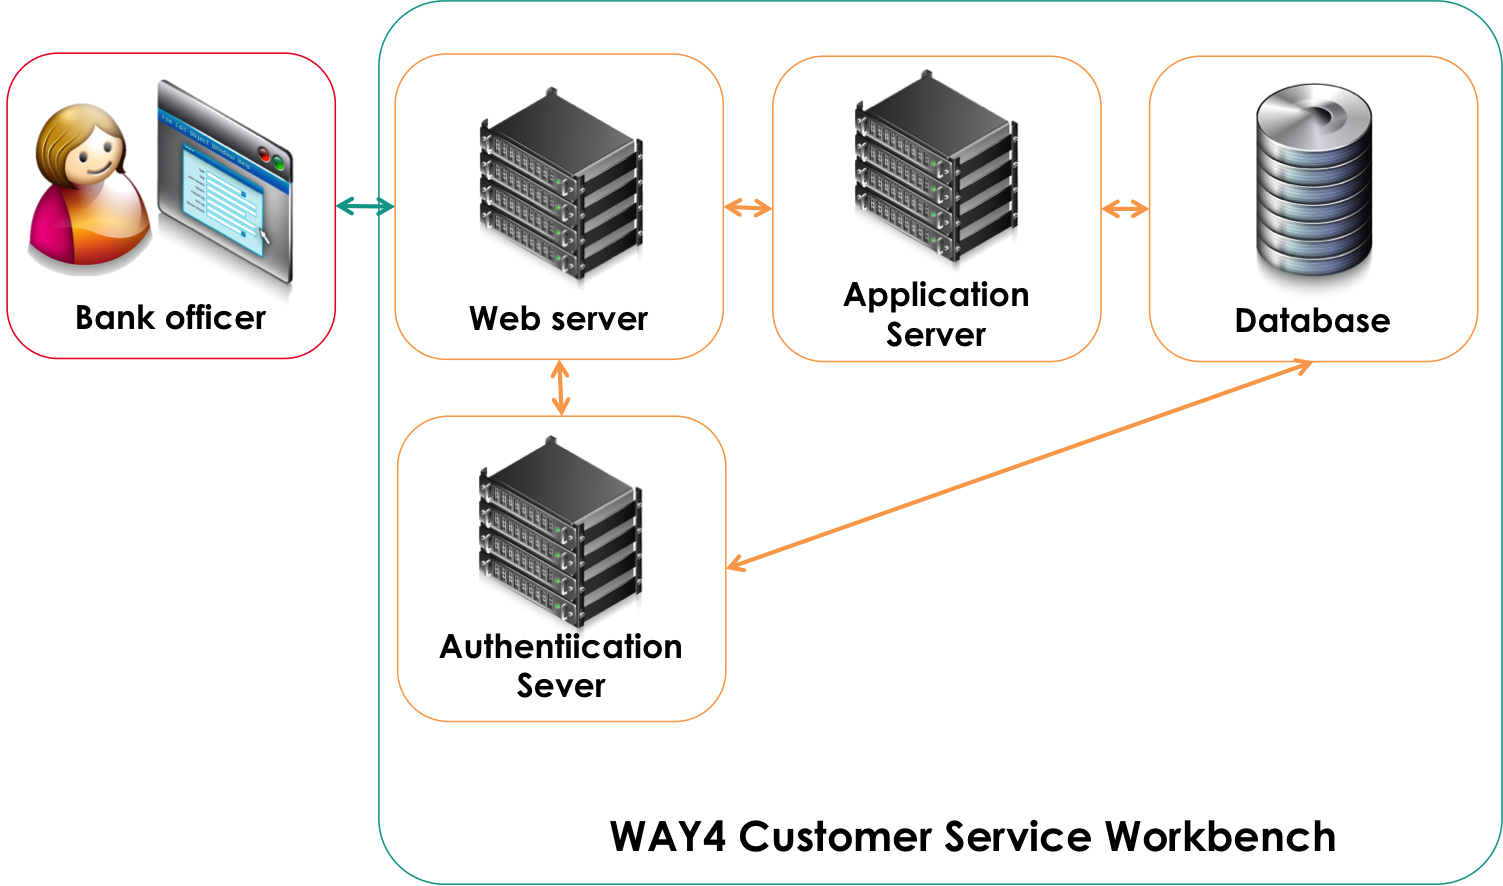 workbench_architecture_eng.png